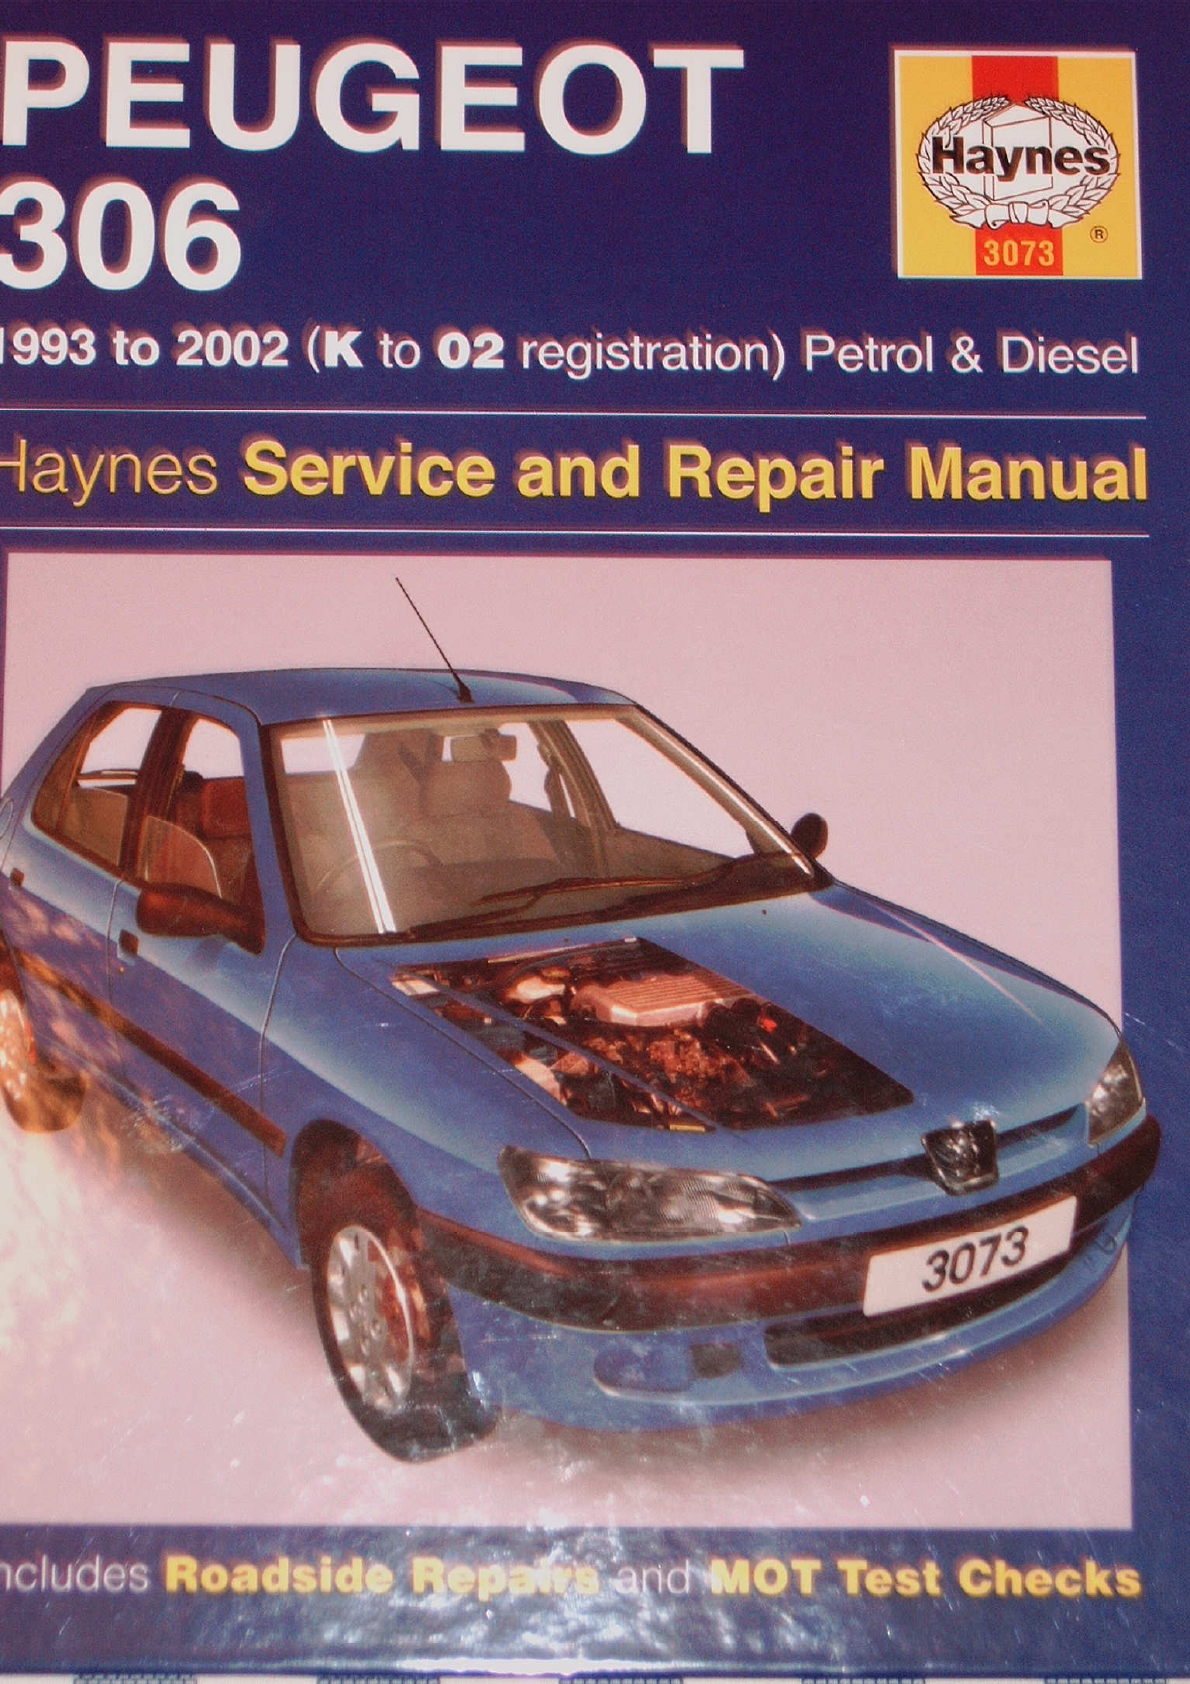 peugeot 306 workshop manual haynes pdf rh manuals co manual de taller peugeot 306 pdf manual de peugeot 306